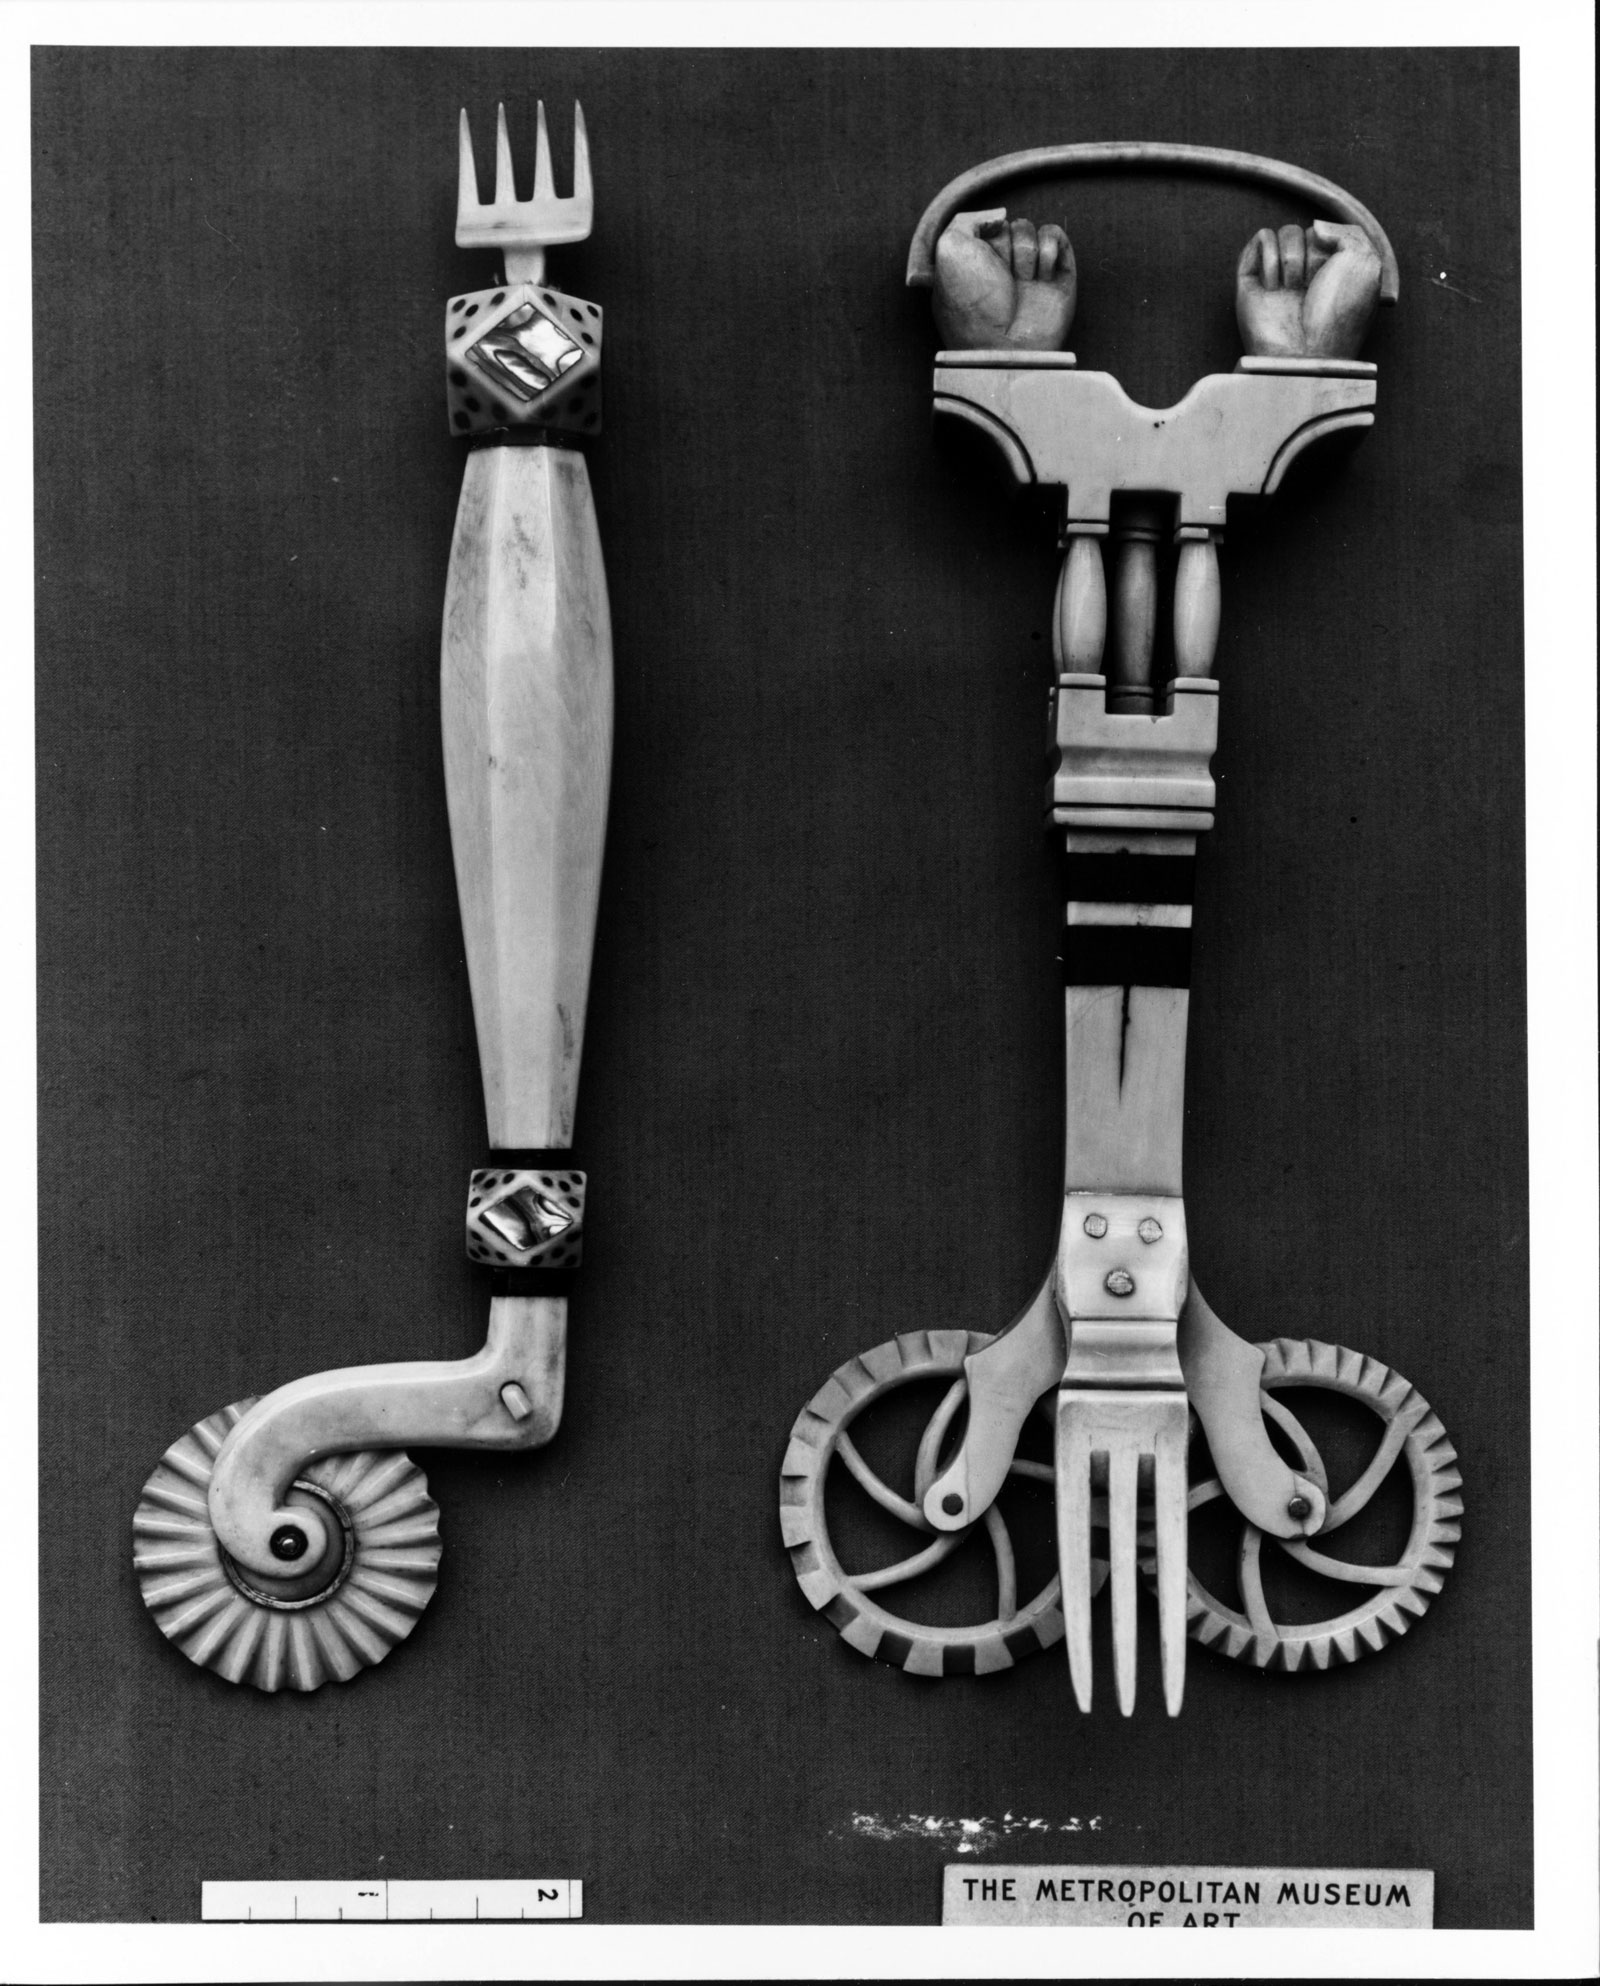 Antique pastry jiggers